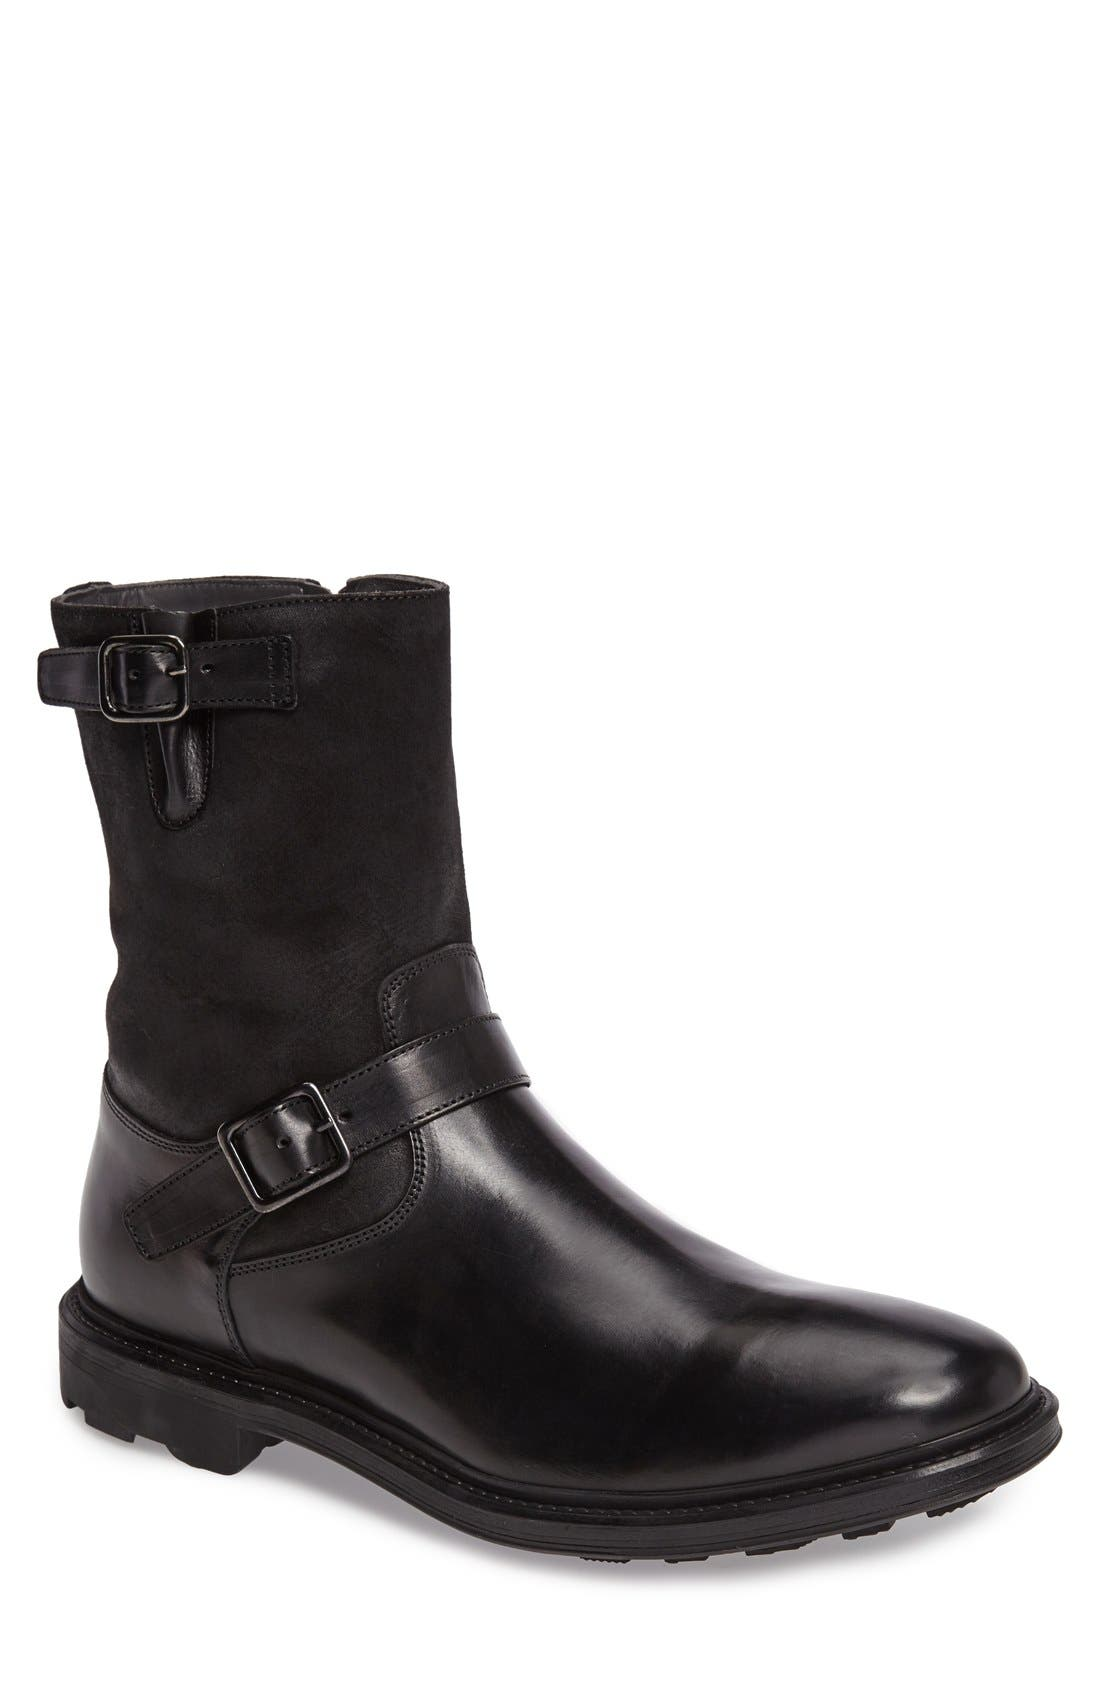 pearson men Free shipping on men's chukka boots at nordstromcom shop from the best brands totally free shipping and returns.